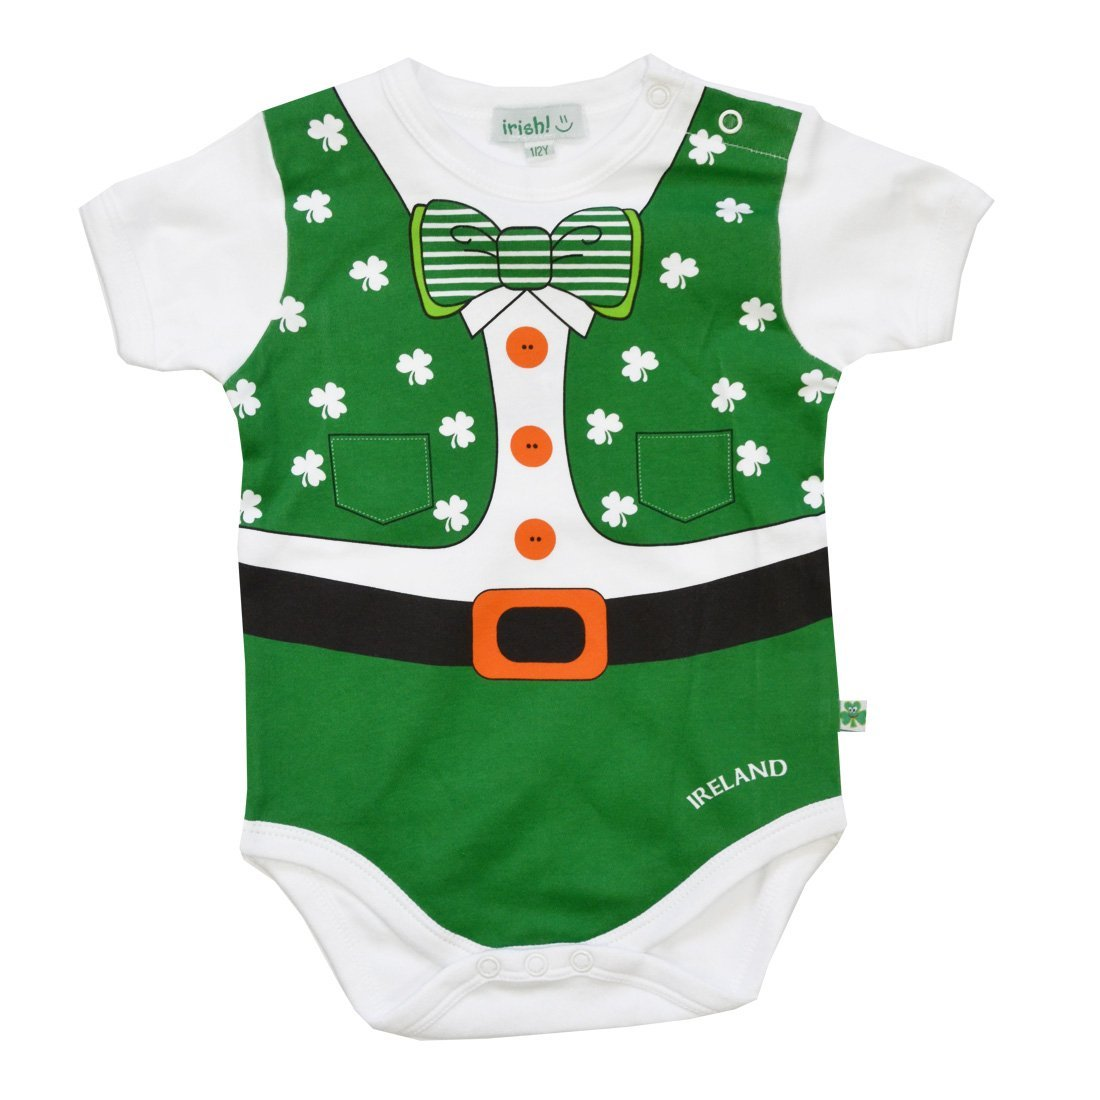 Full Leprechaun Baby Vest With a Shamrock and Bow Tie Design Carrolls Irish Gifts